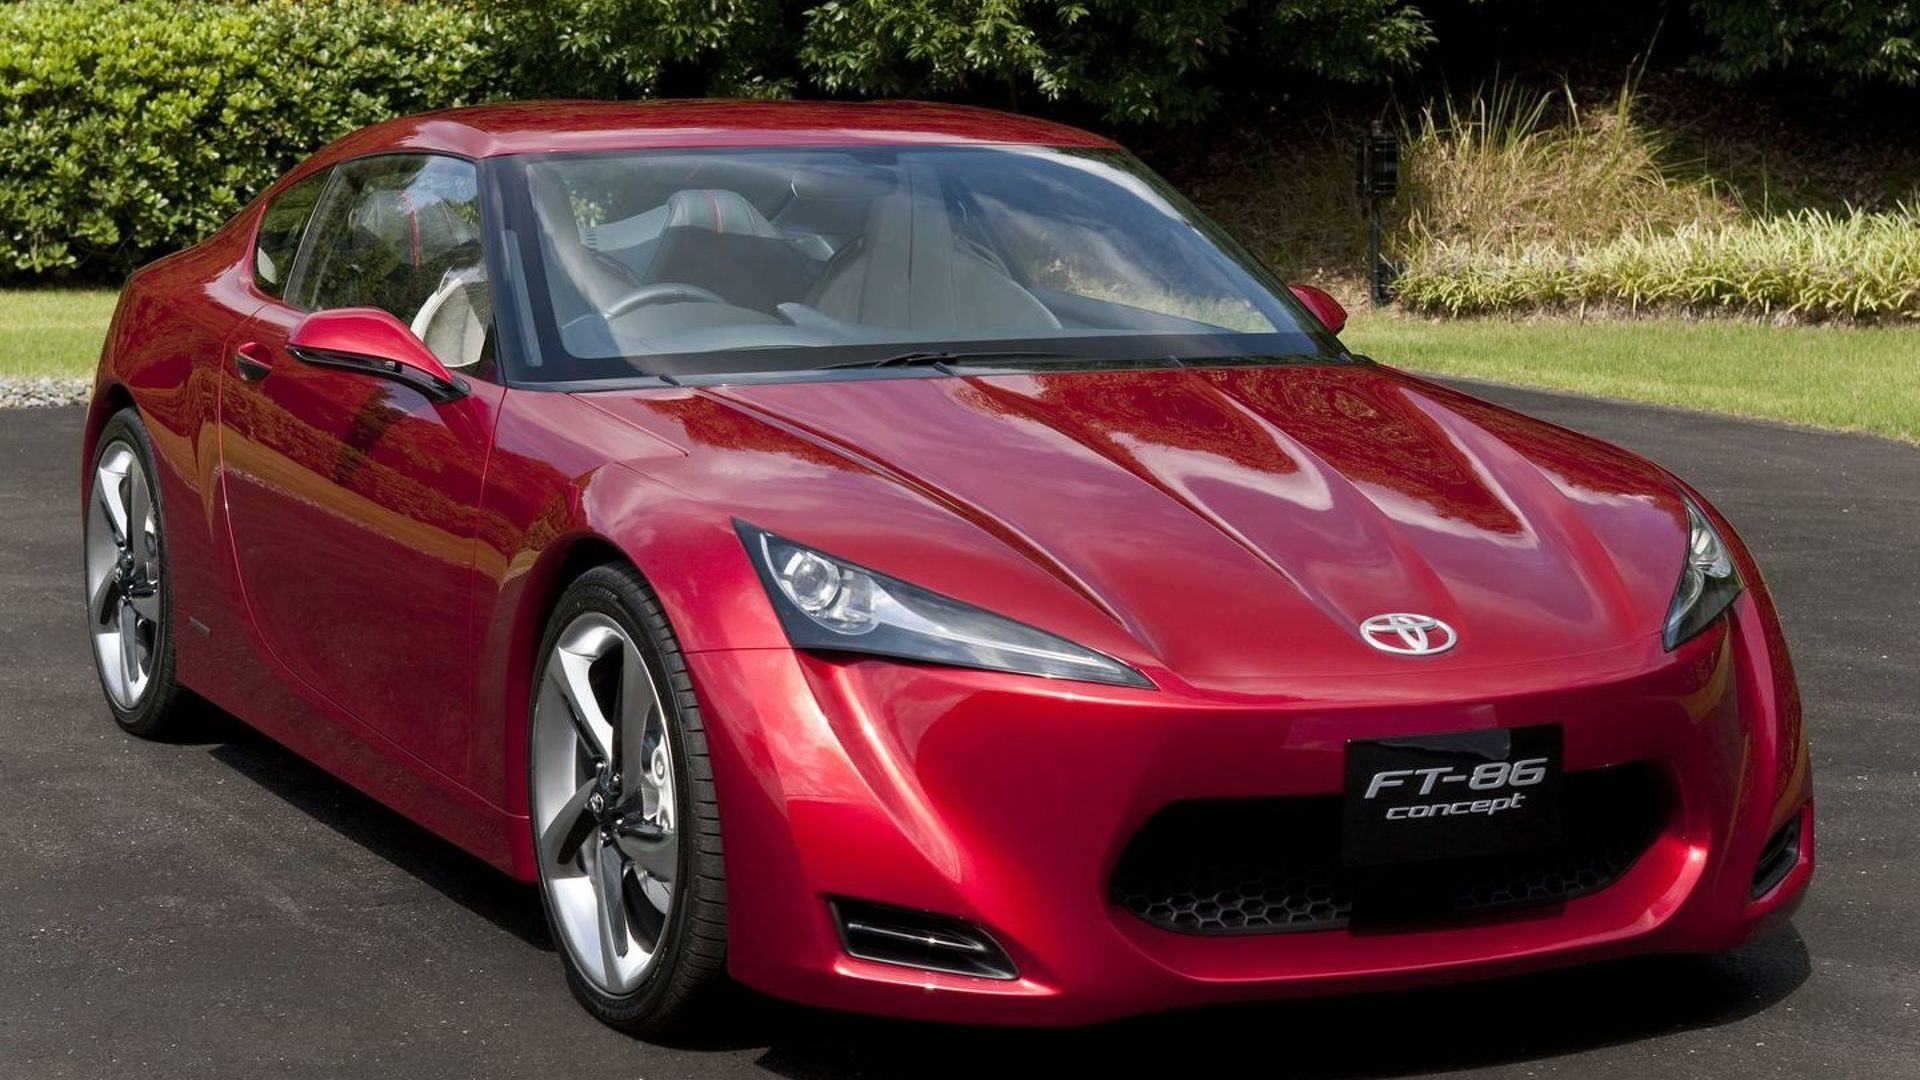 Toyota FT-86 to be sold under Scion brand in U.S.